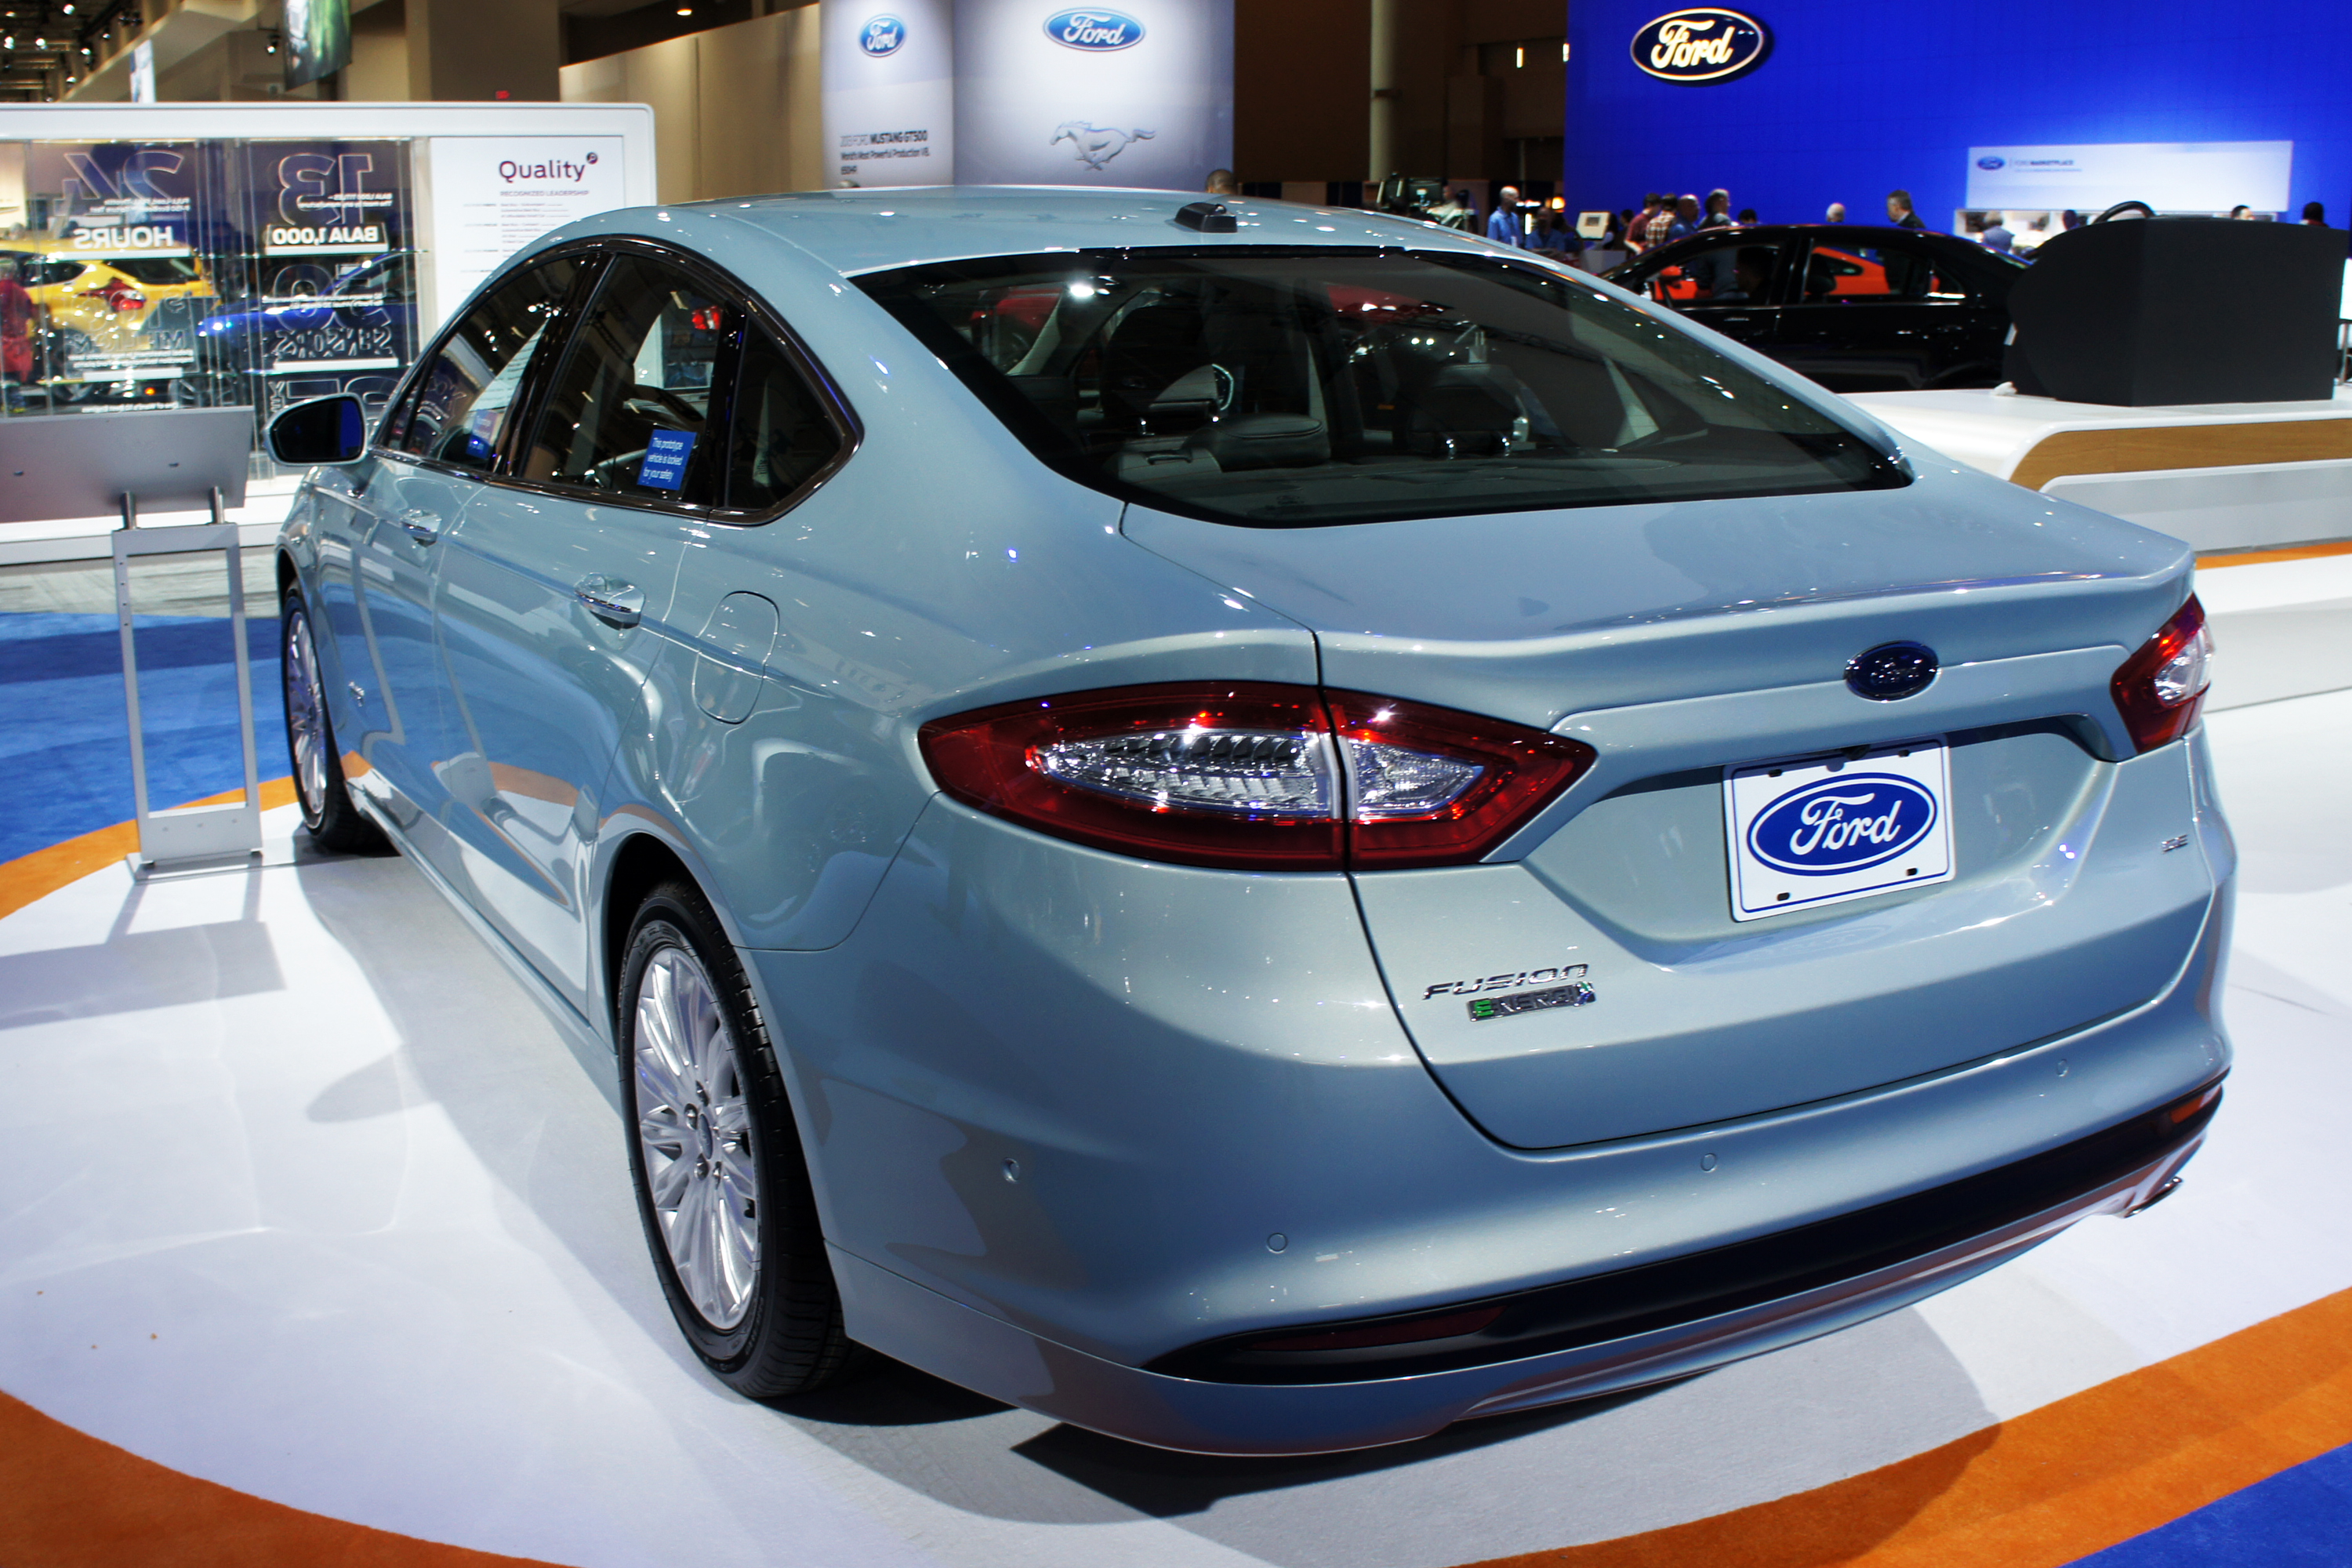 File:Ford Fusion Energi SEL WAS 2012 0578.JPG - Wikimedia Commons